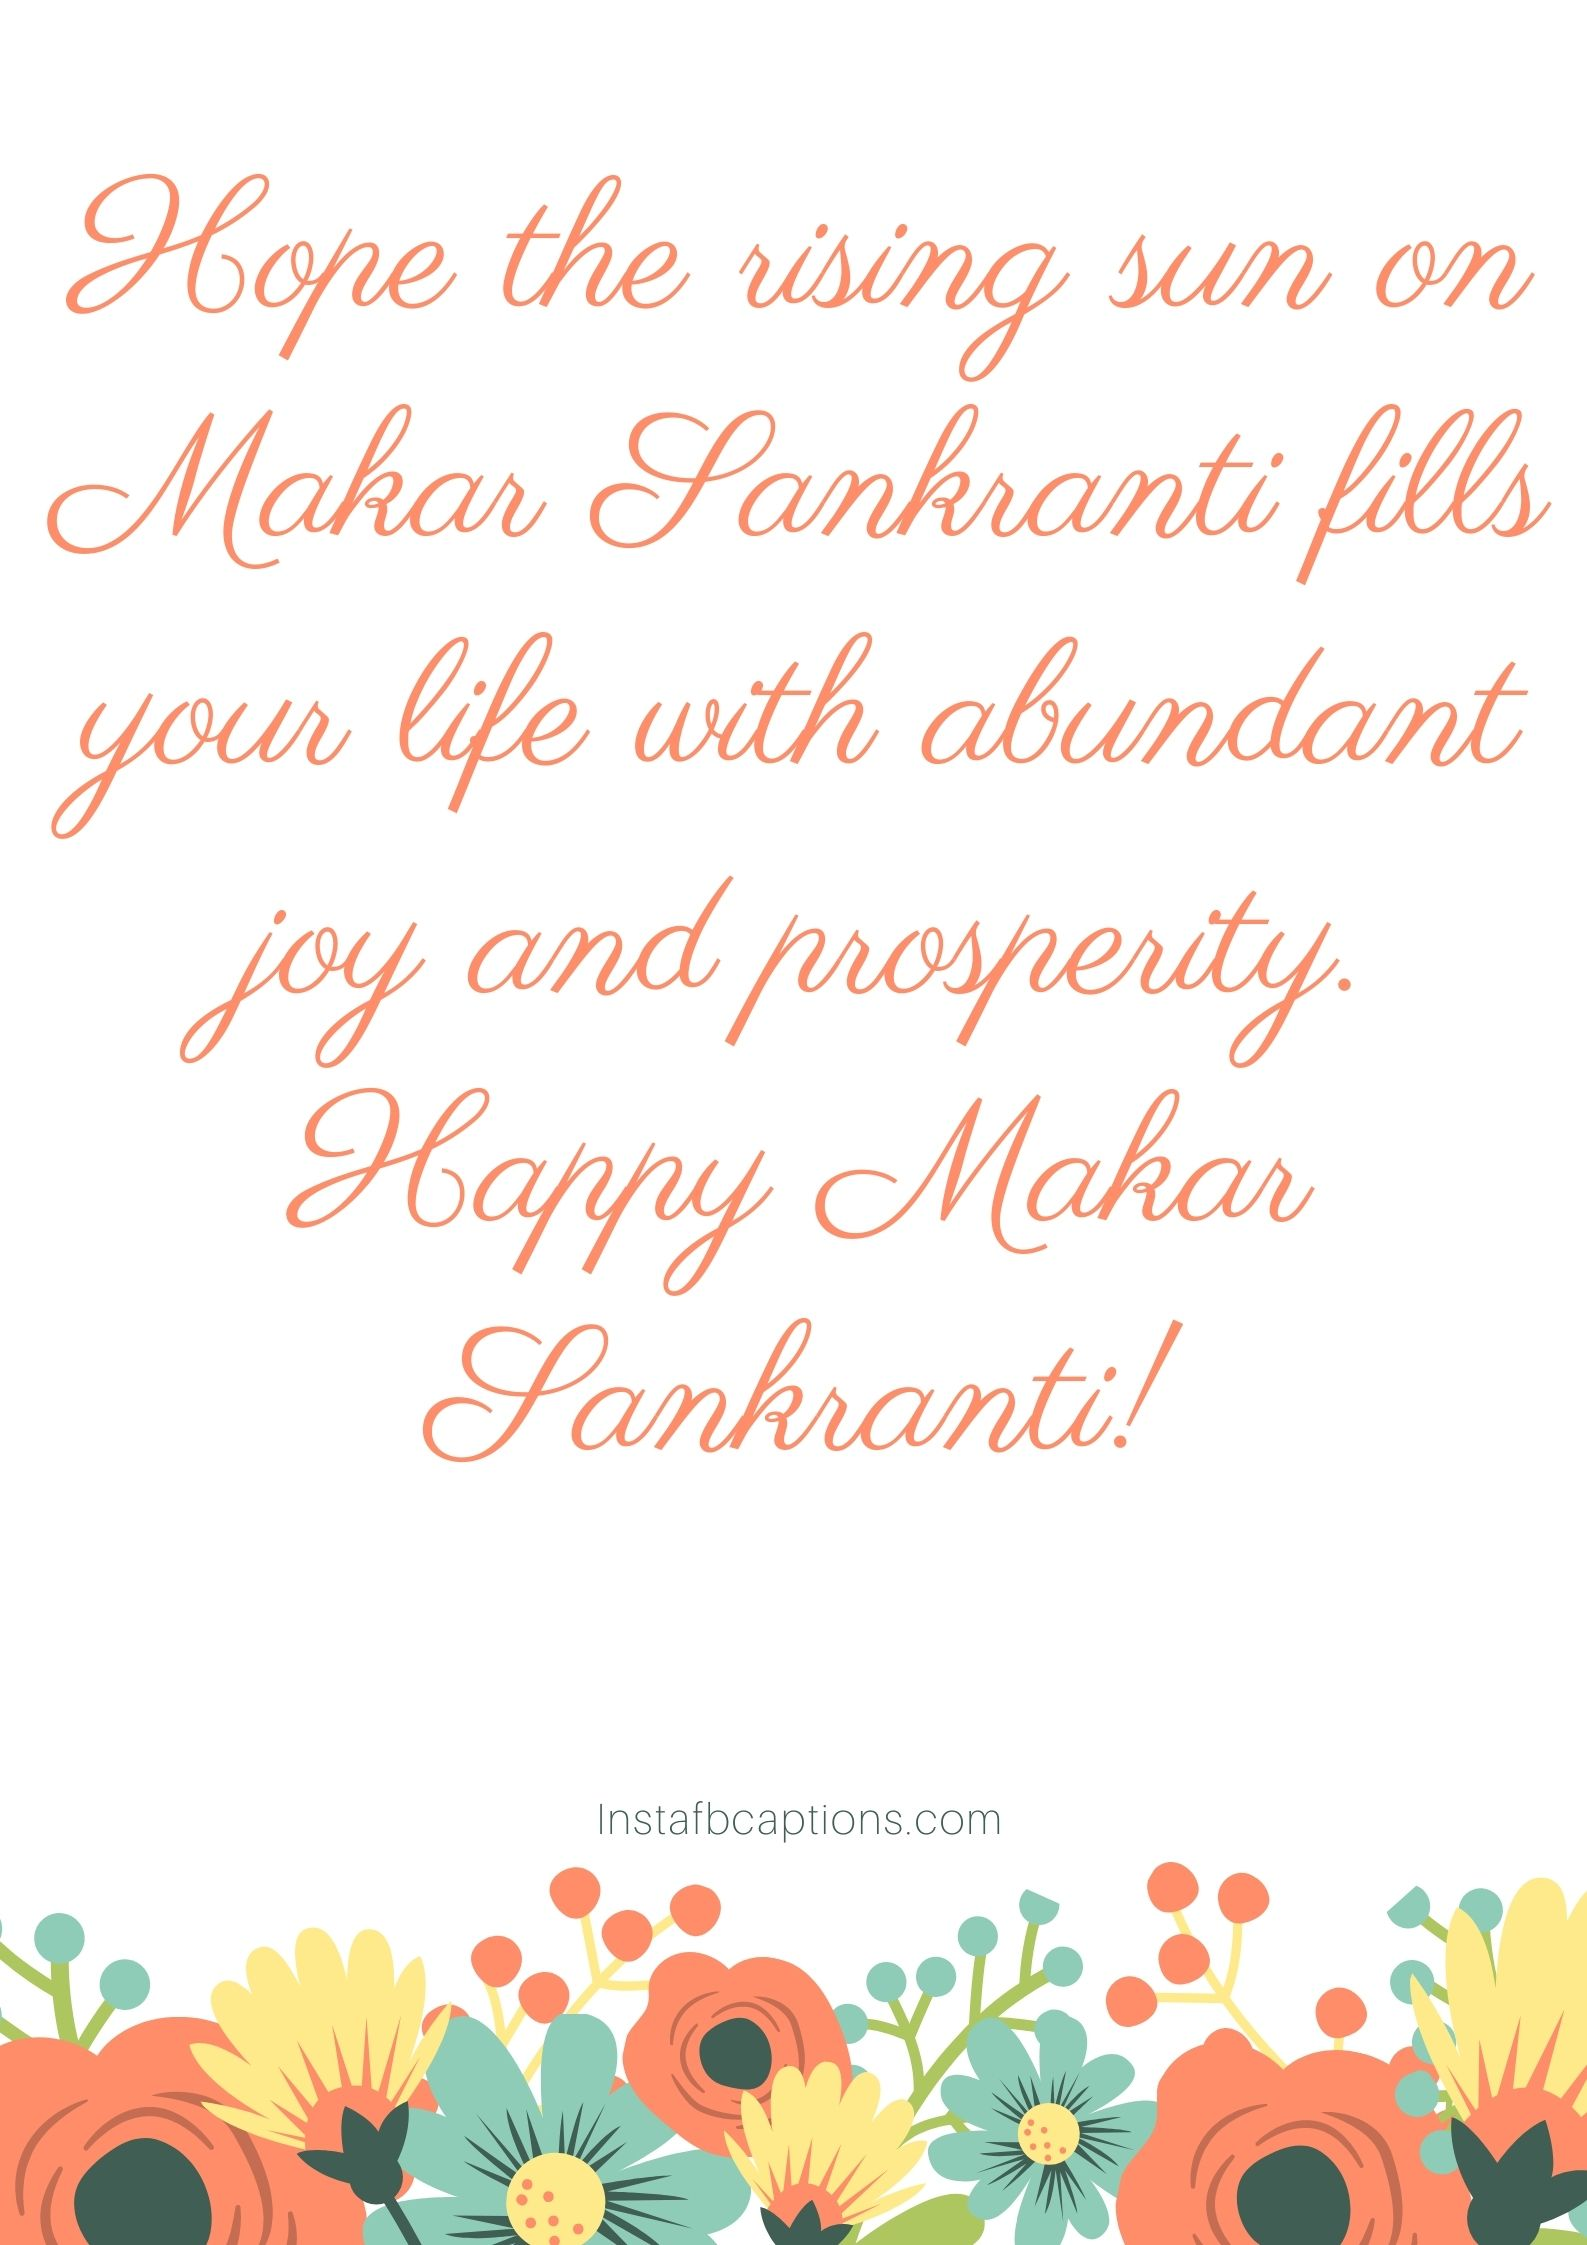 Makar Sankranti Health Wishes  - Makar Sankranti Health Wishes - MAKAR SANKRANTI Instagram Captions and Quotes 2021